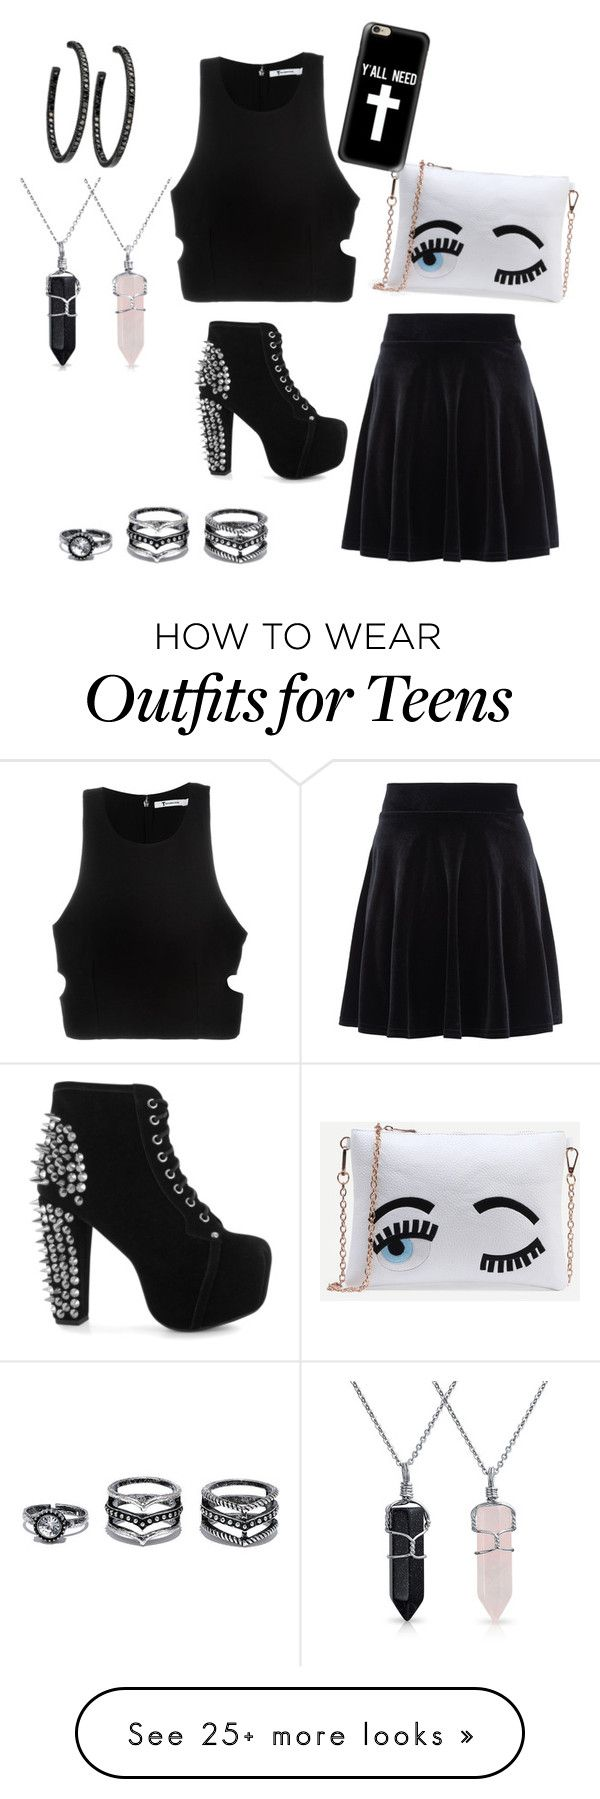 """""""Untitled #55"""" by blueisbae2015 on Polyvore featuring T By Alexander Wang, Jeffrey Campbell, New Look, Bling Jewelry, LULUS and Casetify"""